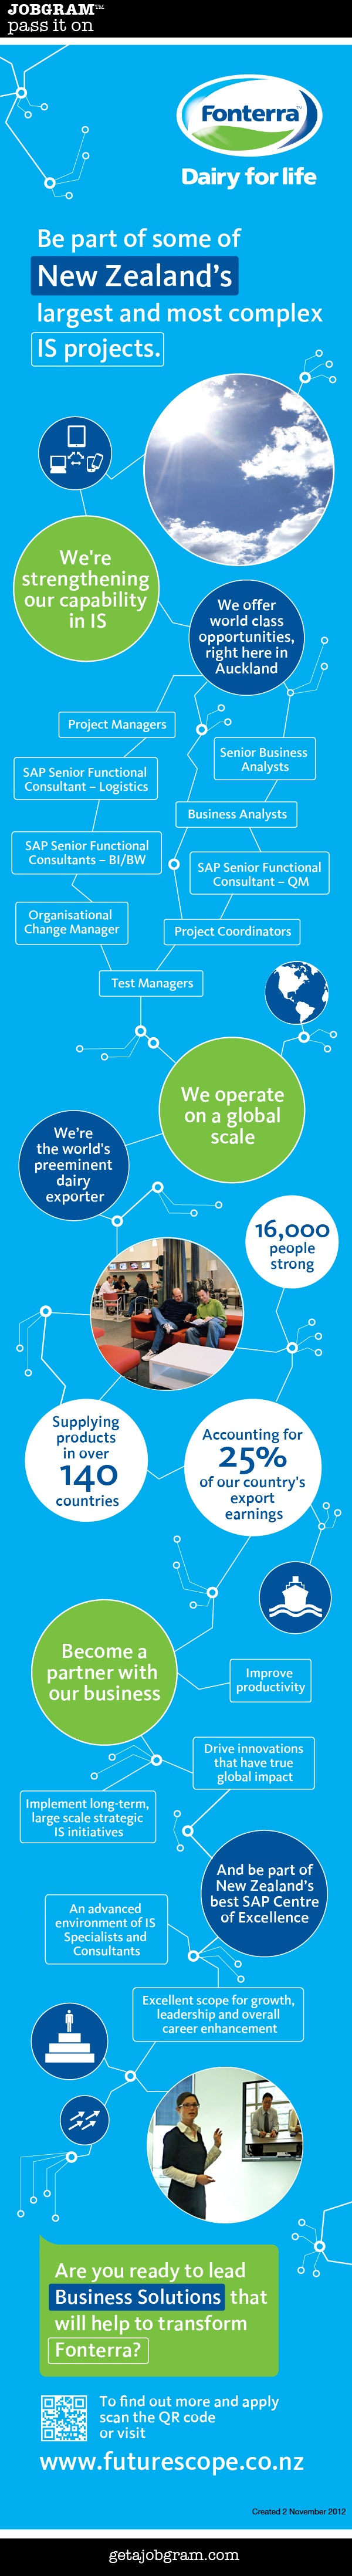 Jobgram: New Zealand's largest company Fonterra is hiring IS professionals http://getajobgram.com/post/34795201938/fonterra-is